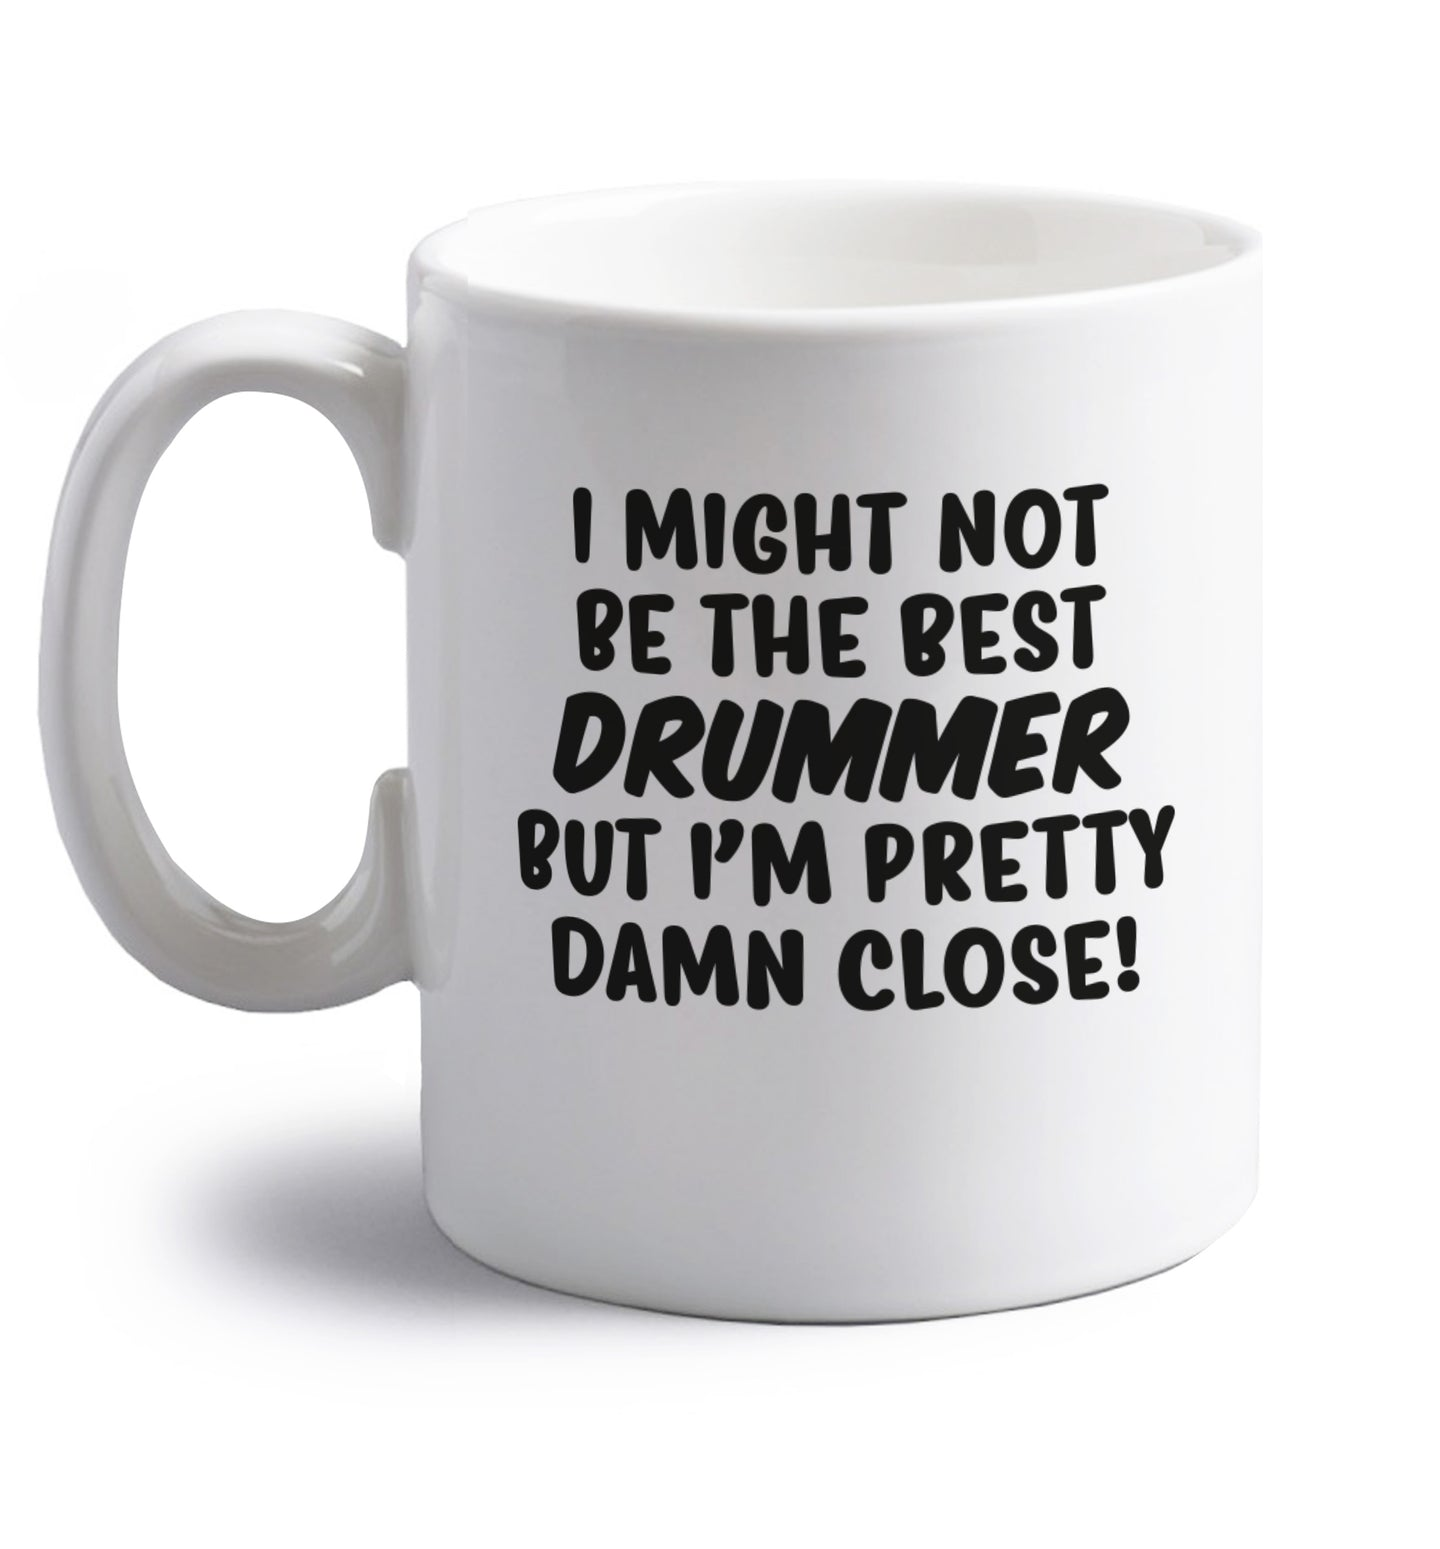 I might not be the best drummer but I'm pretty close! right handed white ceramic mug